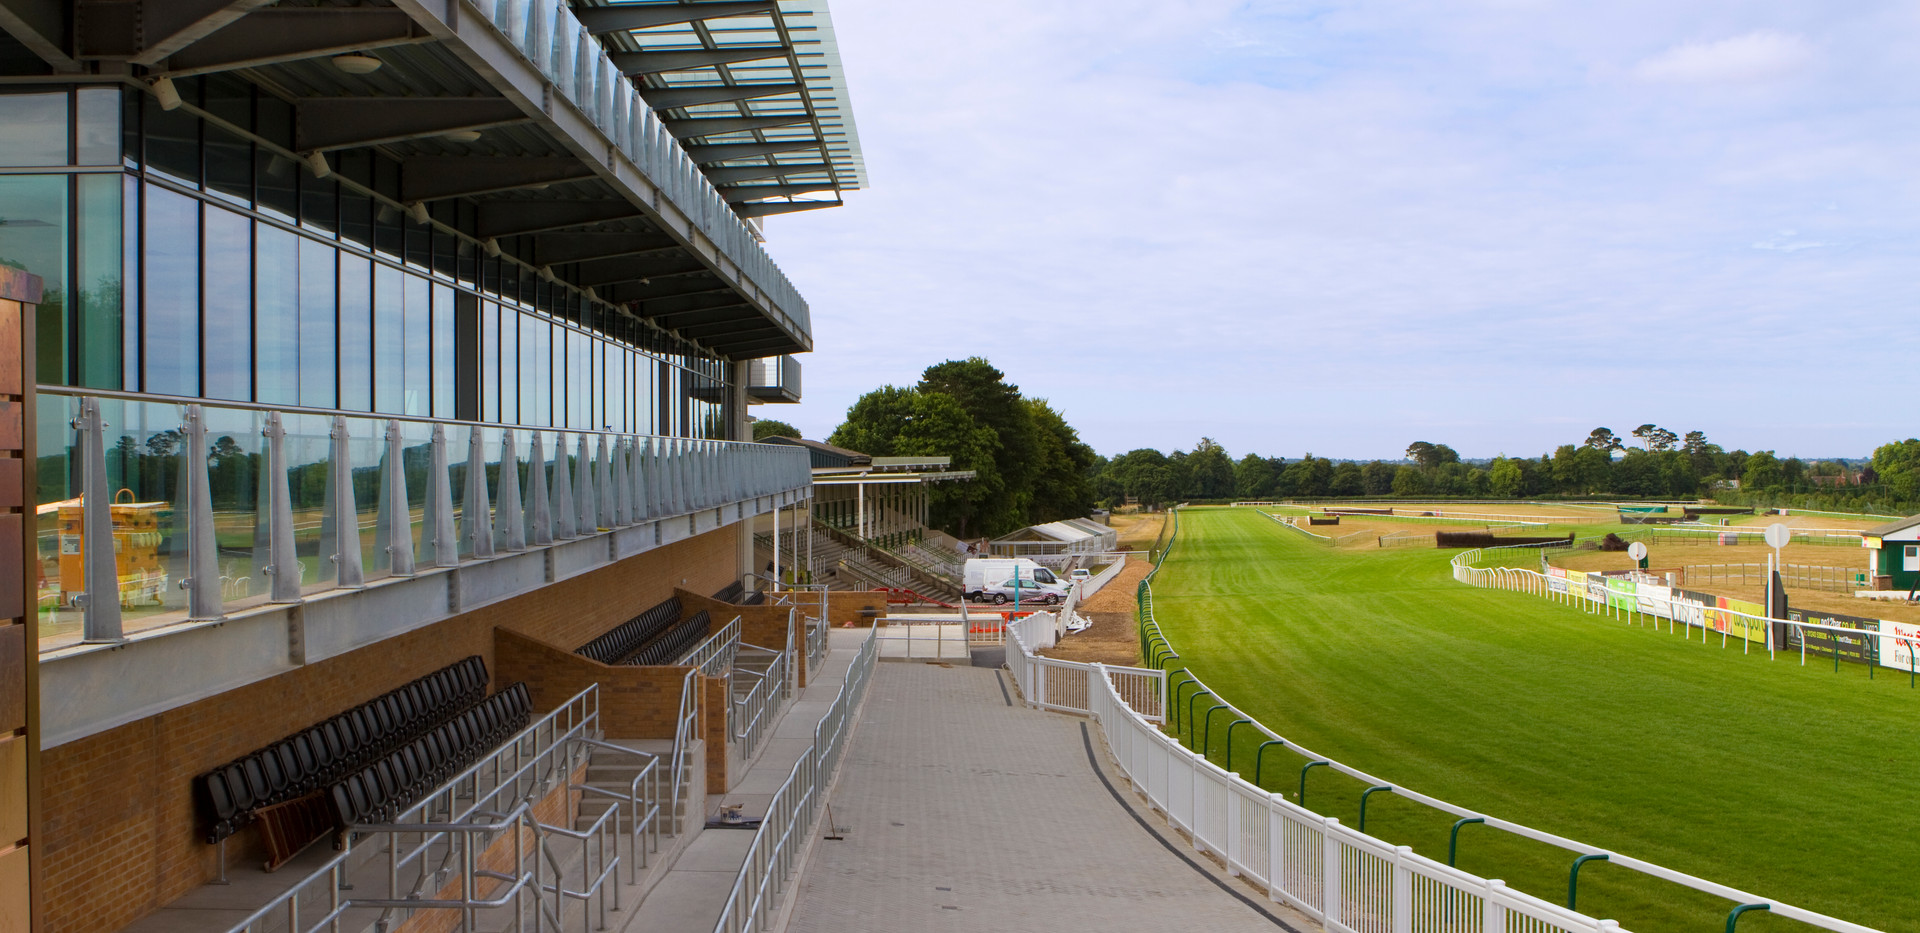 Fontwell Park Racecoure Track